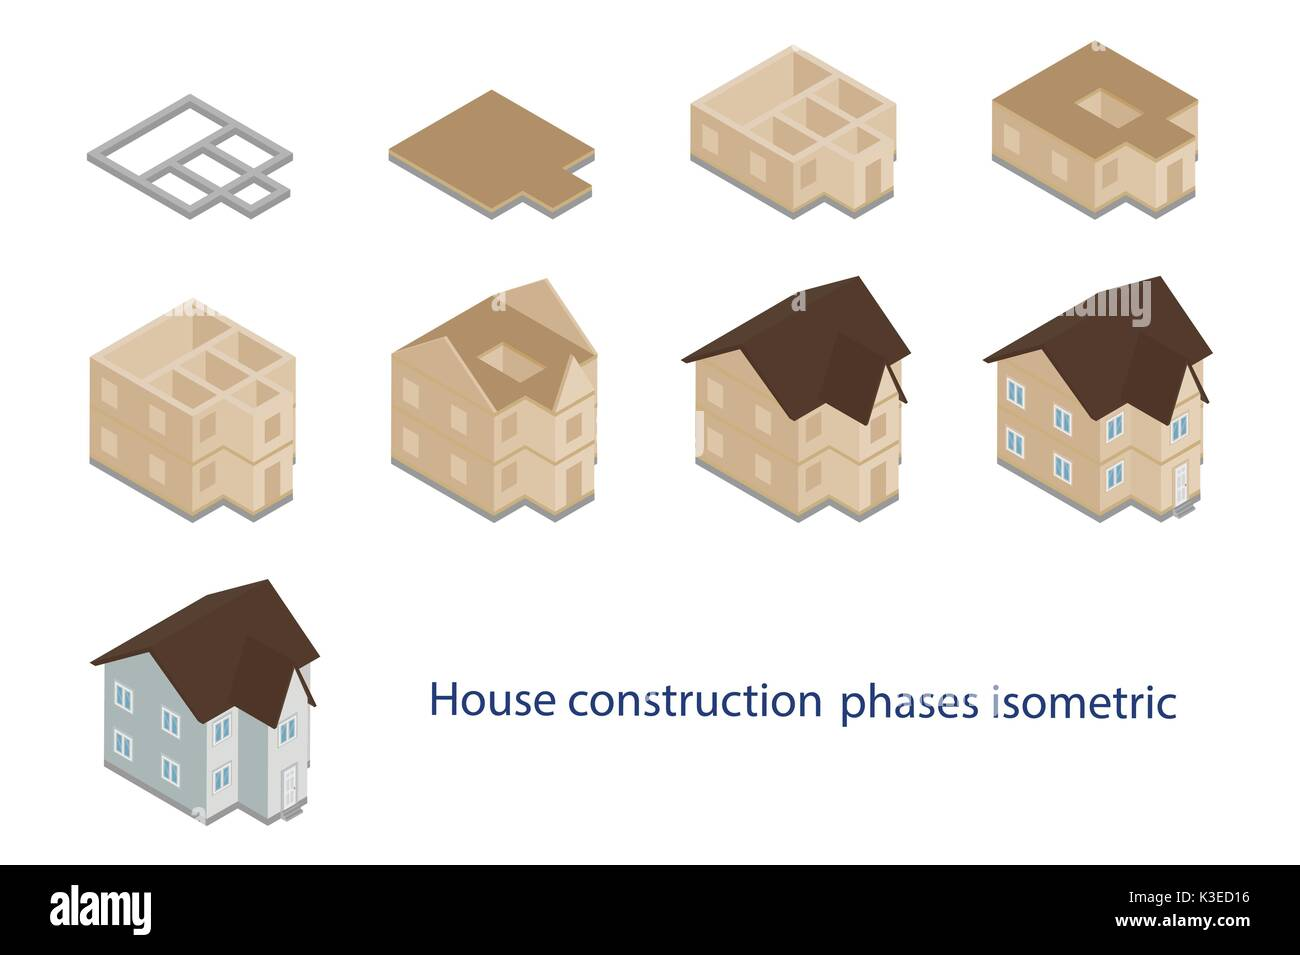 Vector illustration house, building construction phases isometric icons set isolated on white background Stock Vector